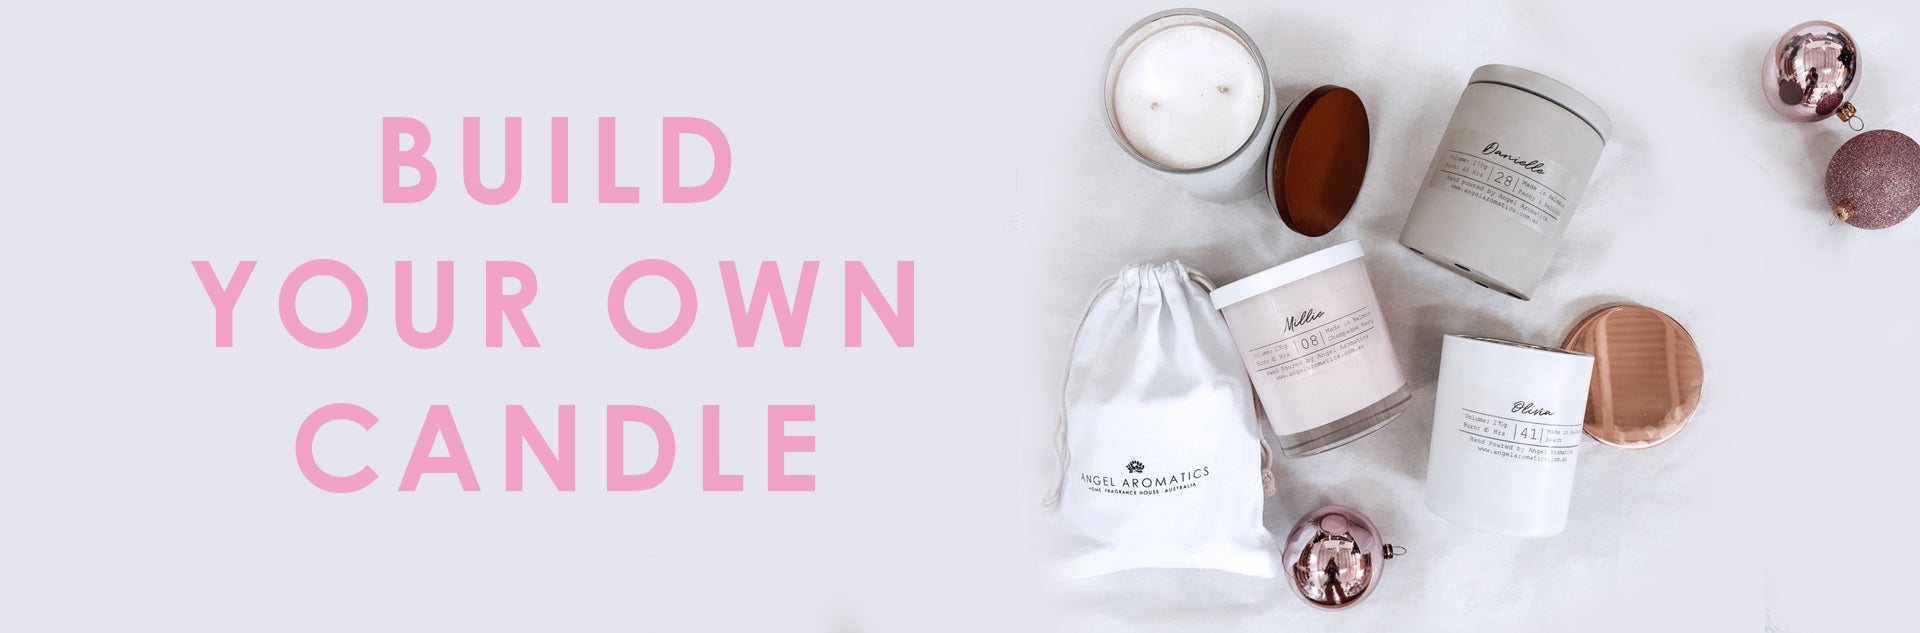 build-your-own-candle